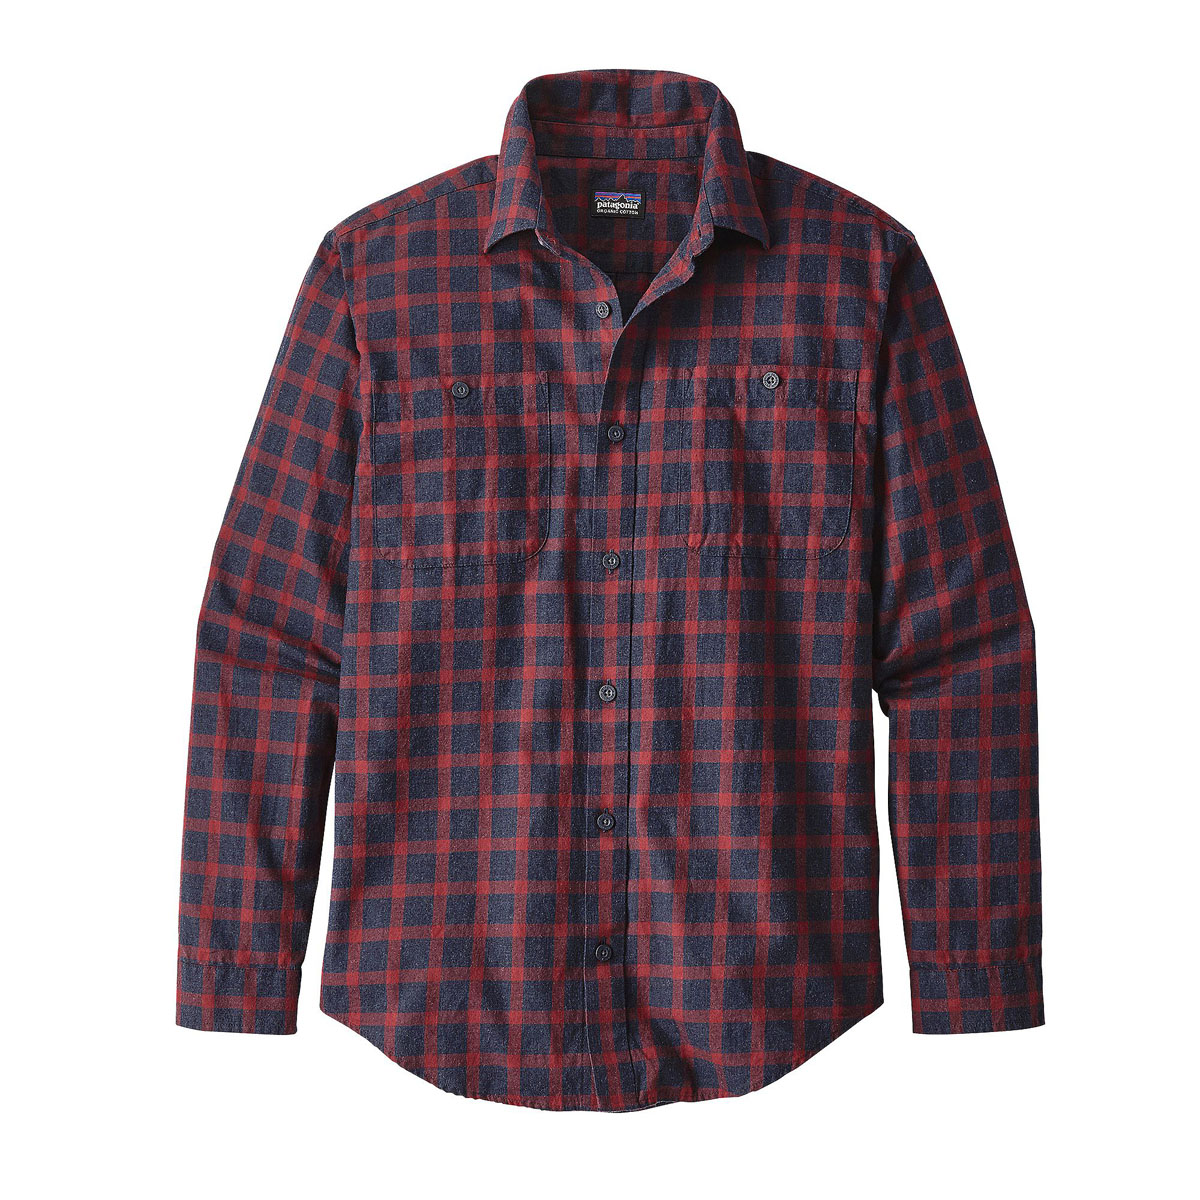 Patagonia Long Sleeved Pima Cotton Shirt T Shirts